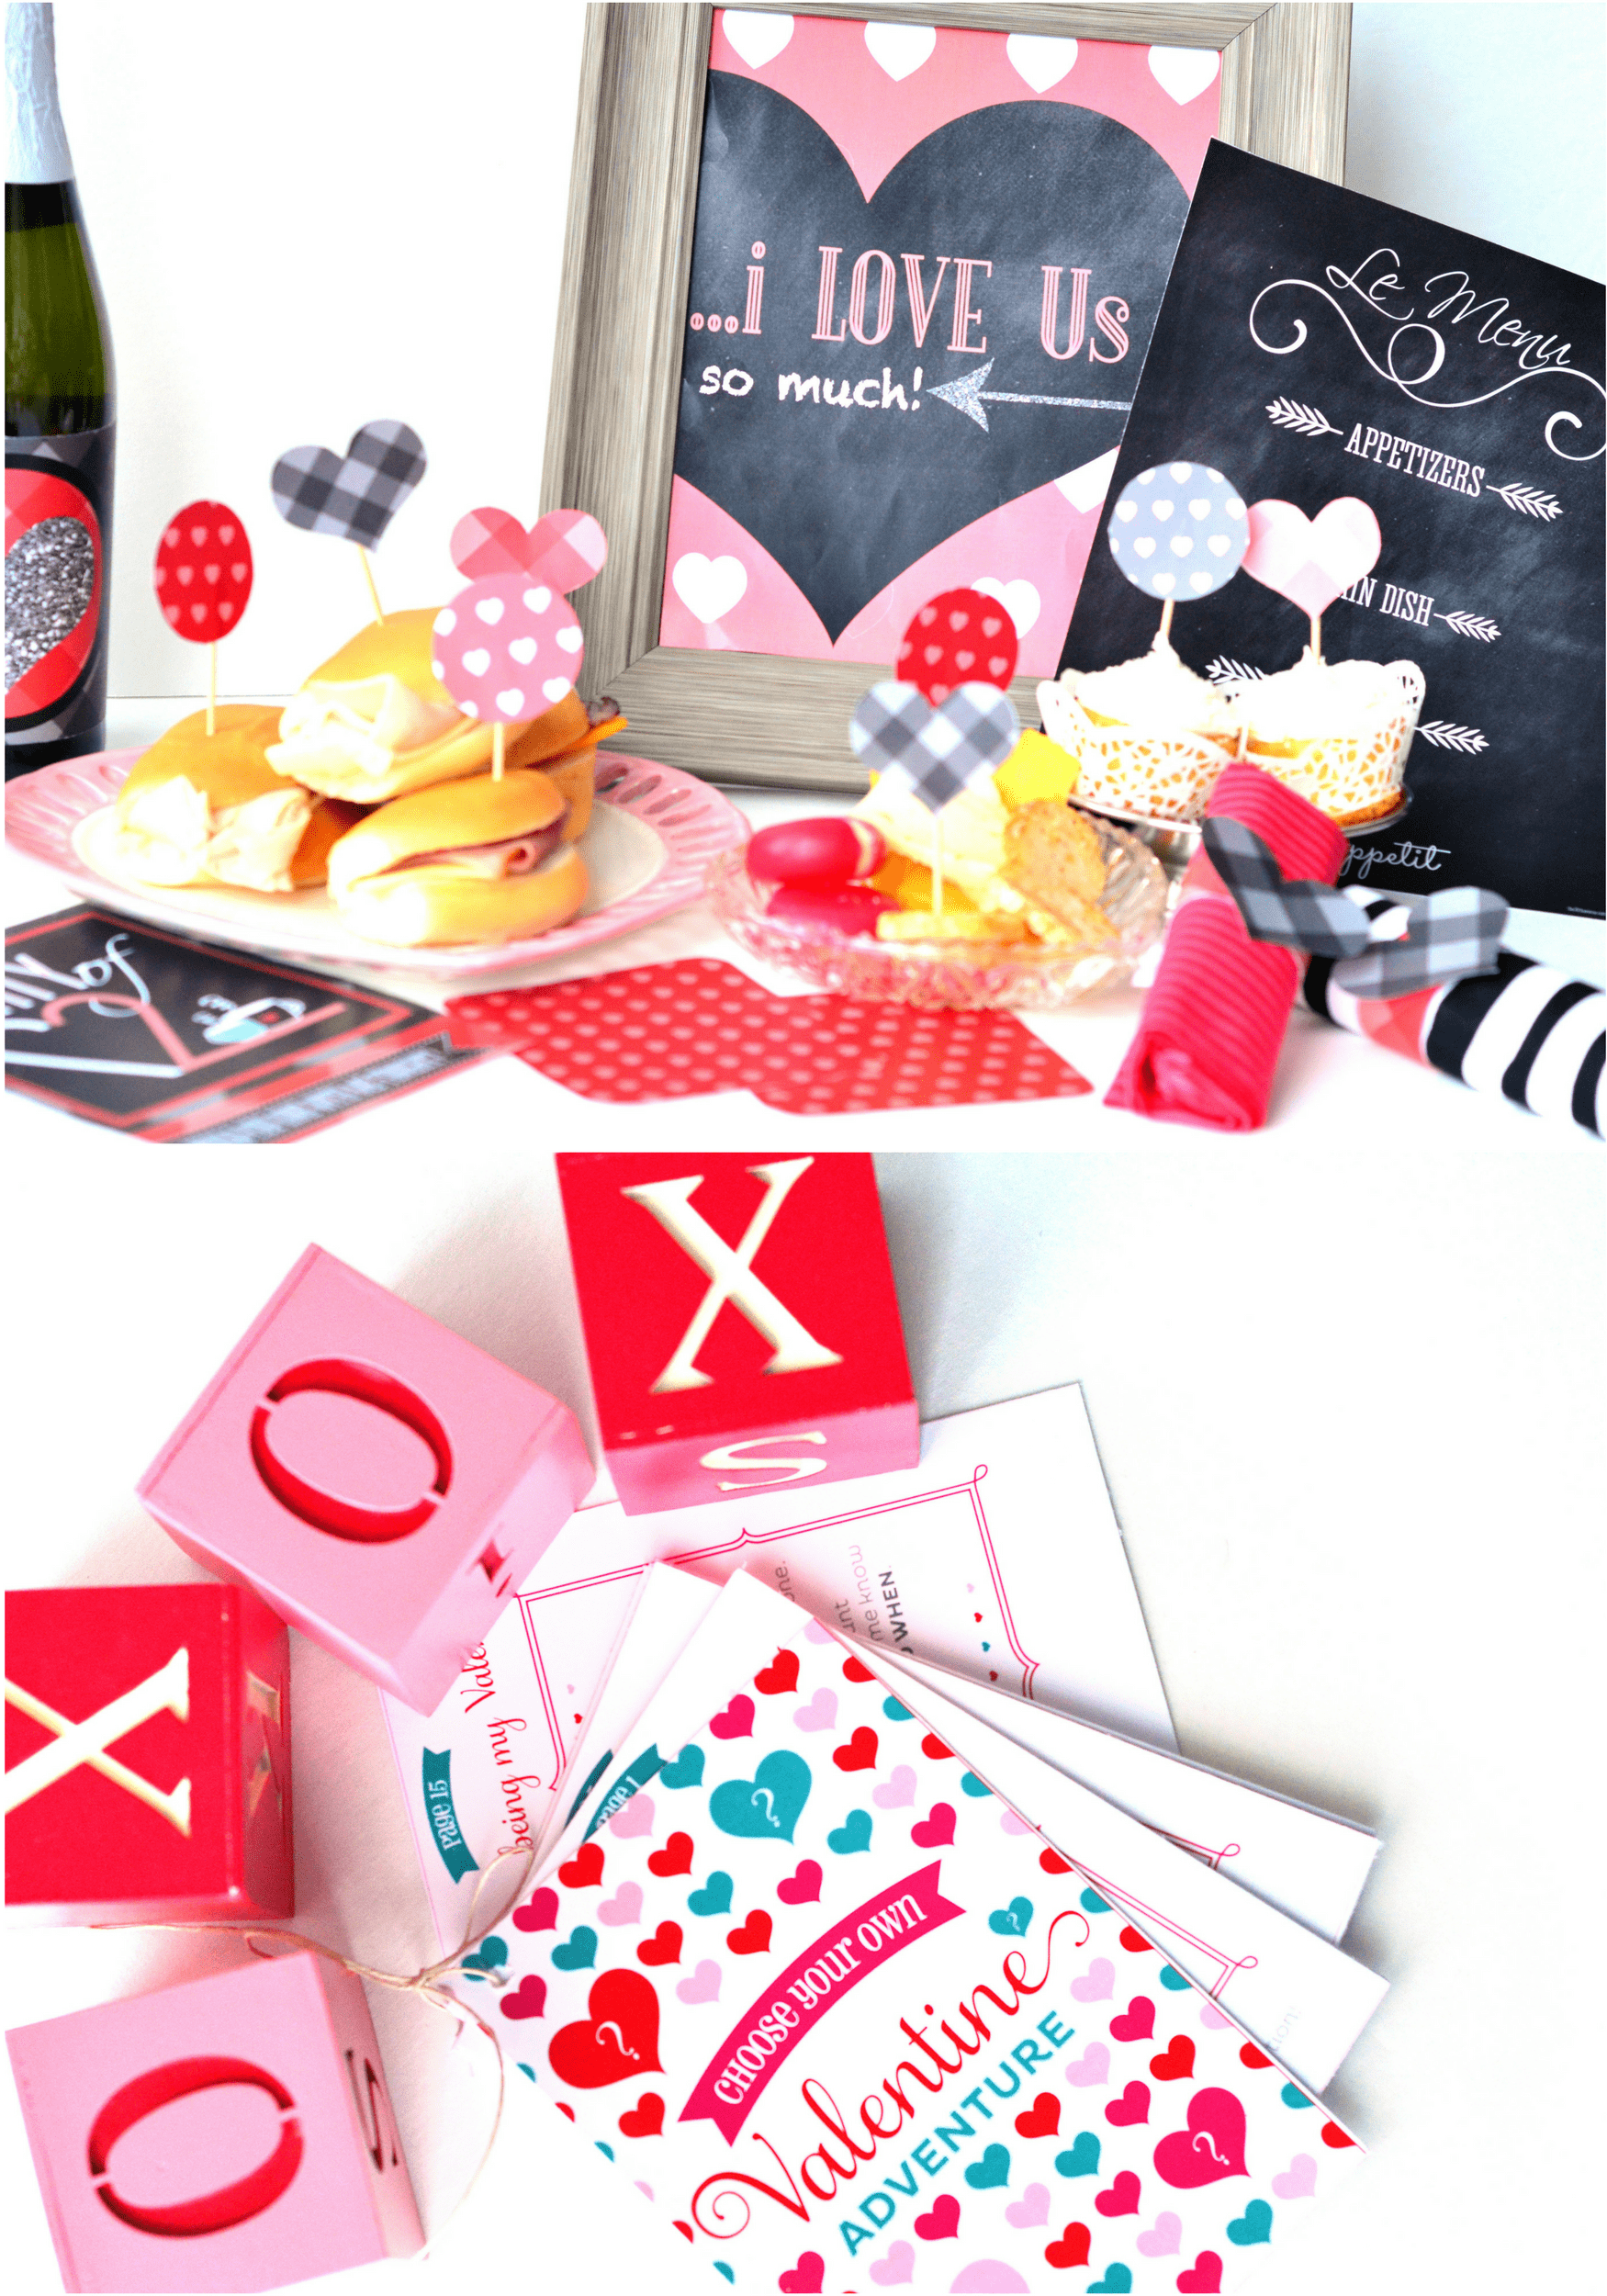 dating divas valentines Find this pin and more on dating divas romance tips by the dating divas date night ideas that you can do from home after the kids are in bed  bath bath table bath accessories.